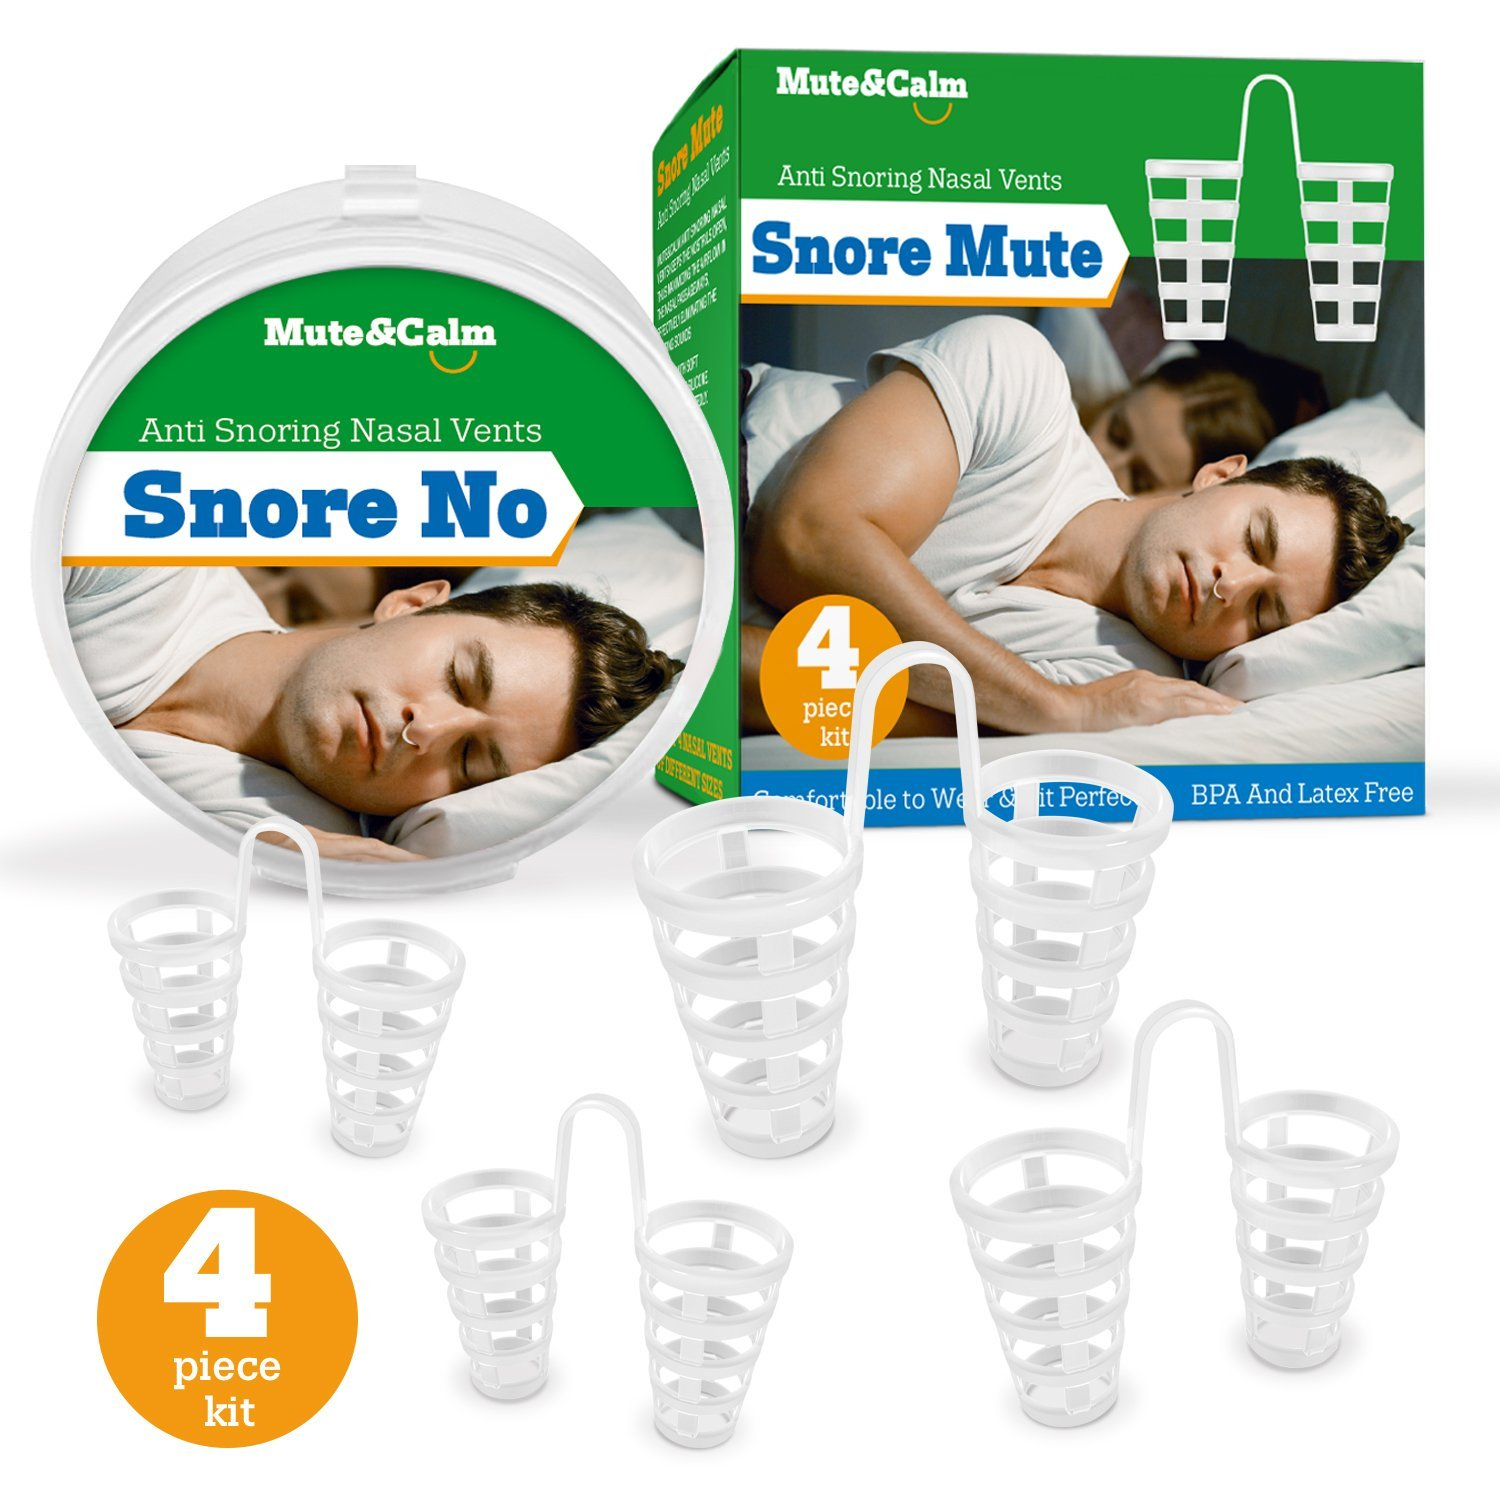 Anti Snoring Nose Vents - Aid - Set of 4 Nasal Dilators - Snore Stopper Solution (1s)